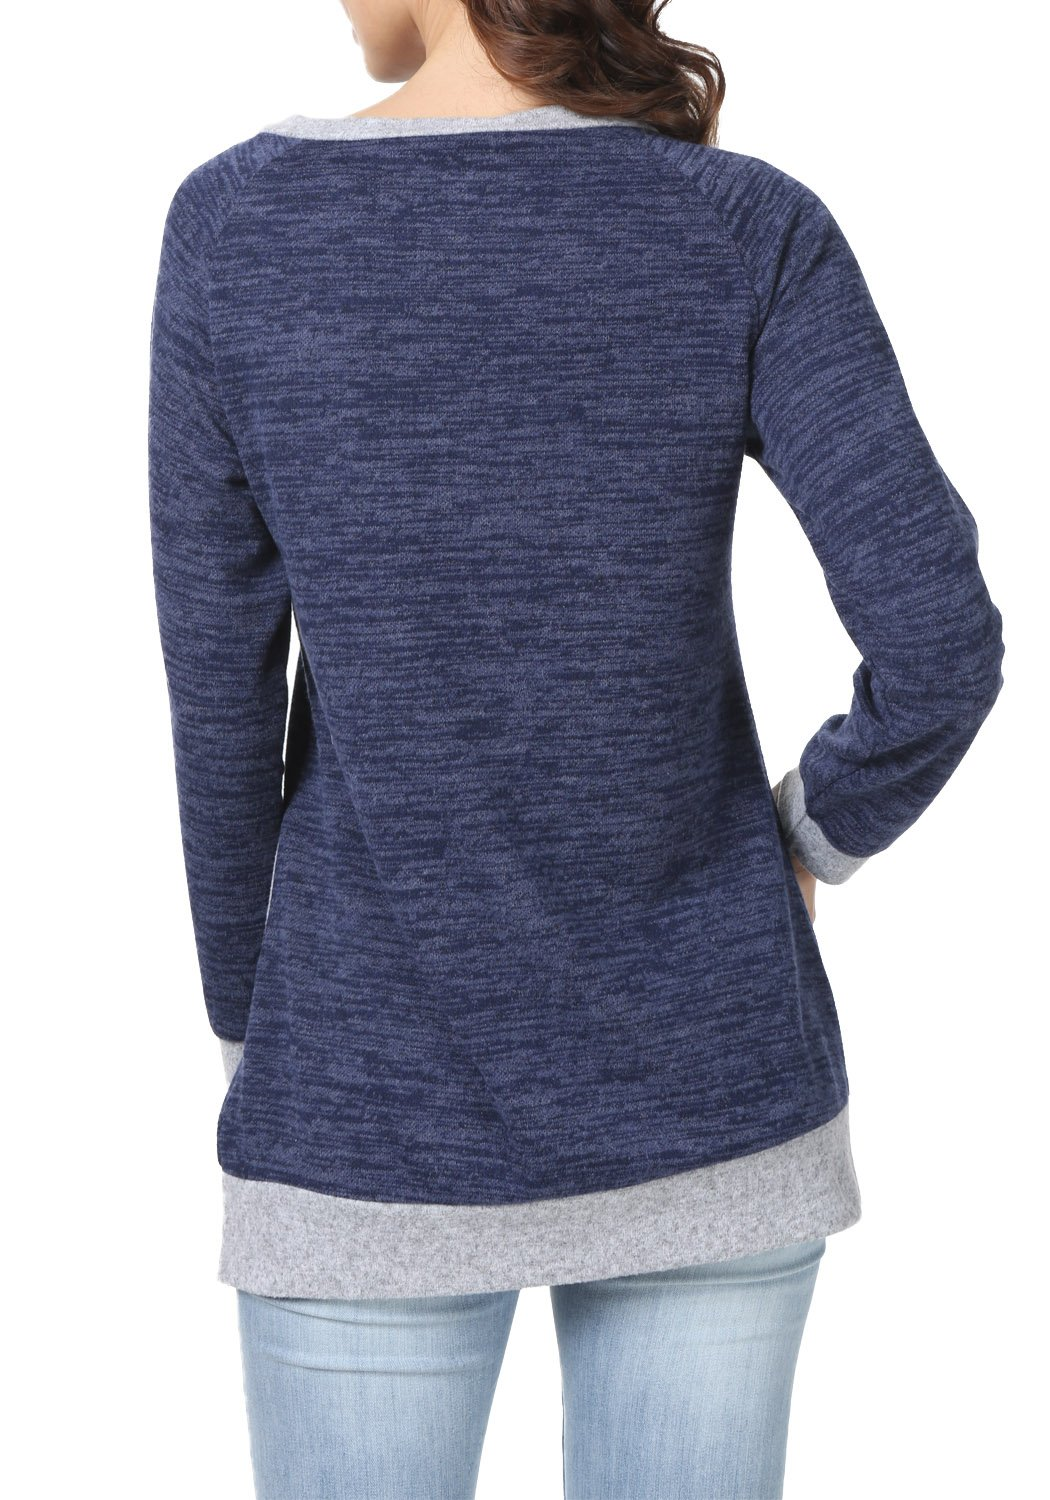 levaca Womens Long Sleeve O Neck Cross Loose Fit Casual Blouse Tunic Tops Blue M by levaca (Image #4)